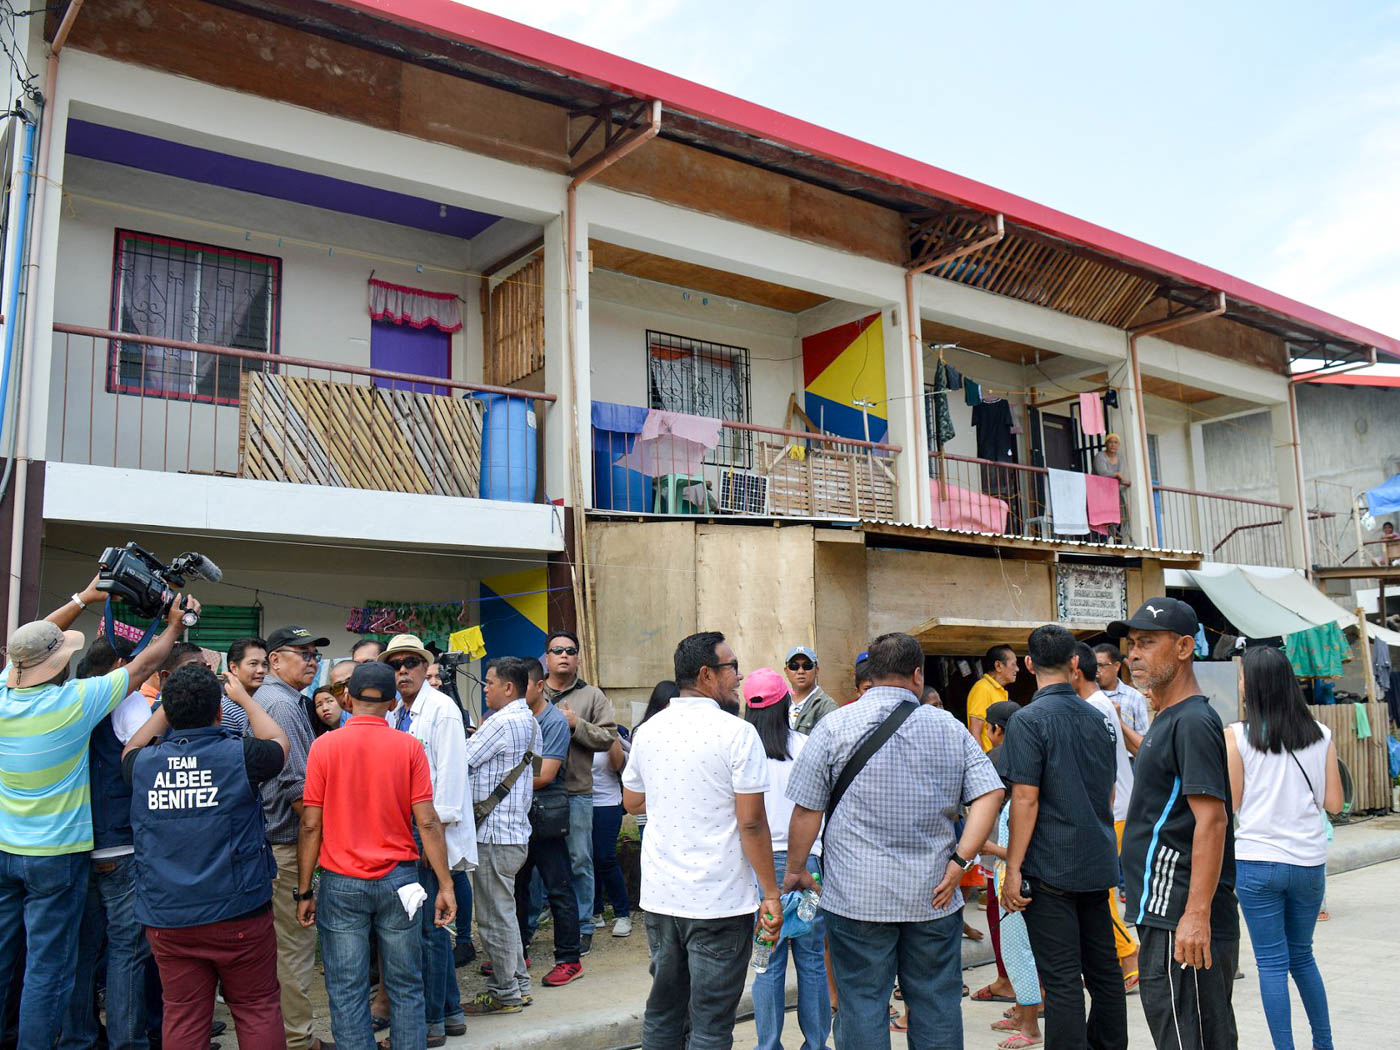 Z3R HOUSING PROJECT for the families displaced by the 2013 Zamboanga siege.